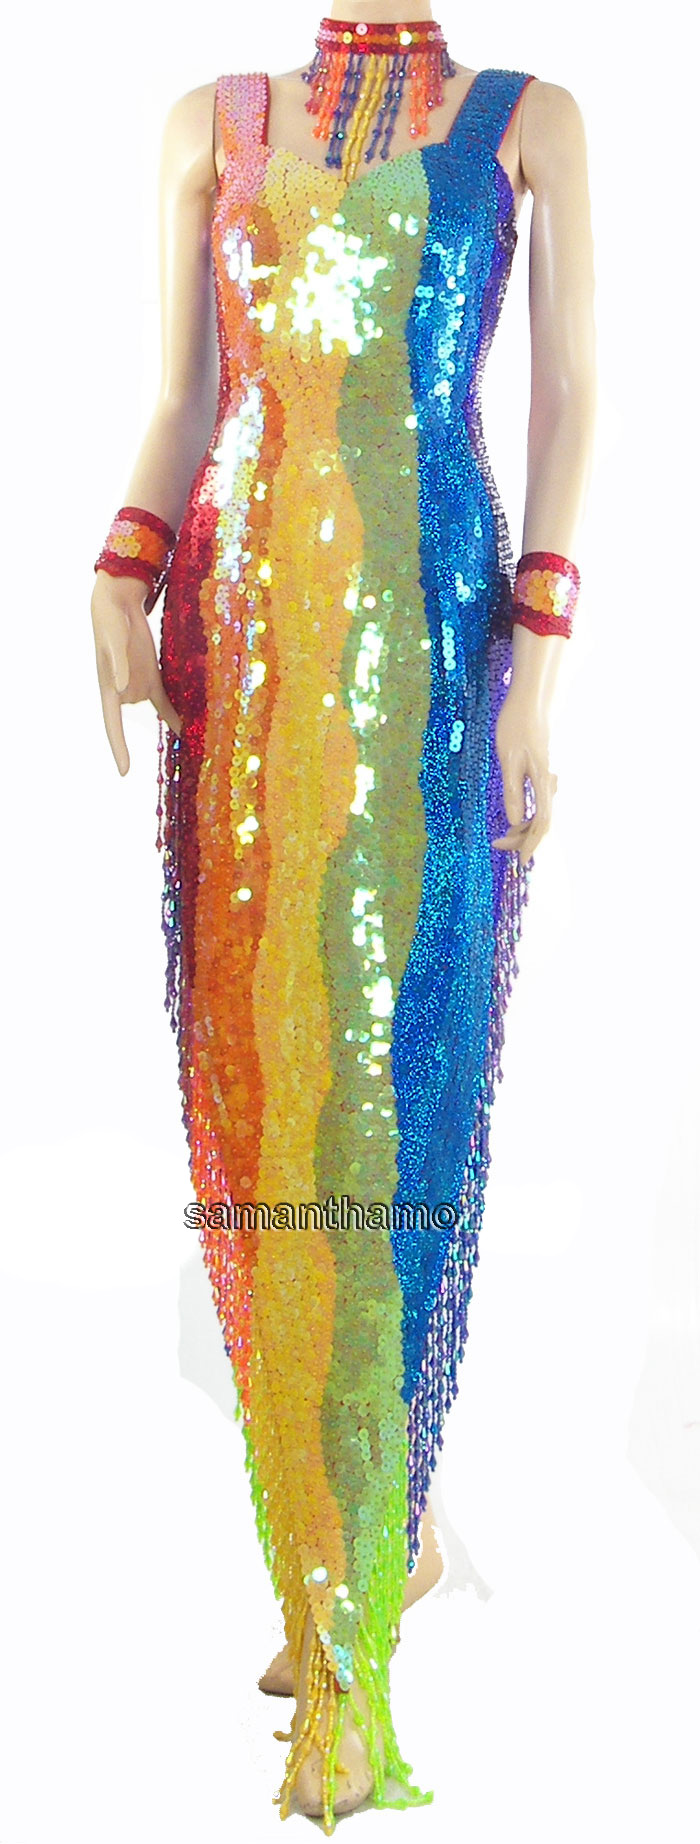 https://michaeljacksoncelebrityclothing.com/gay-pride-clothing/TM0912-sequin-rainbow-gay-pride-dance-dress.jpg